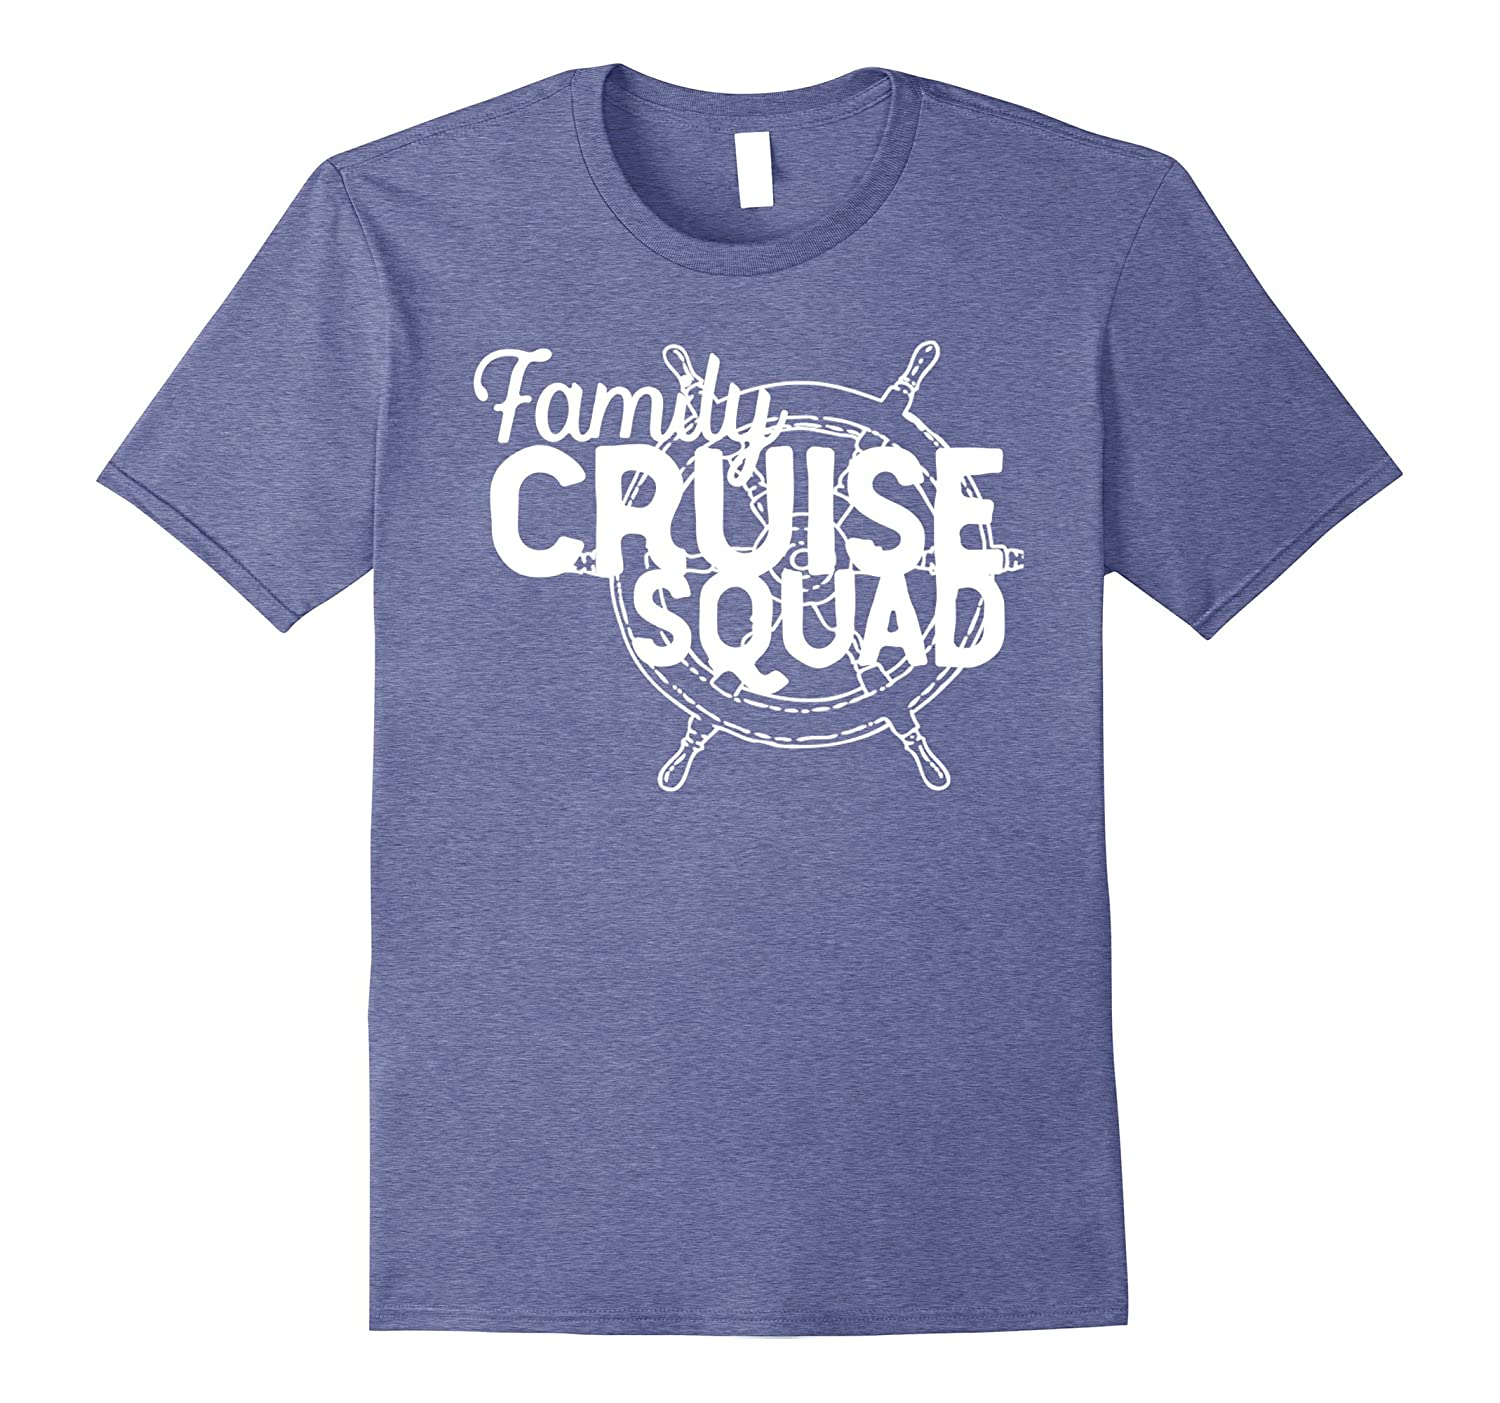 ef1c23b6 Cruise T Shirt Funny Family and Group Cruise Ship Tees-alottee gift ...